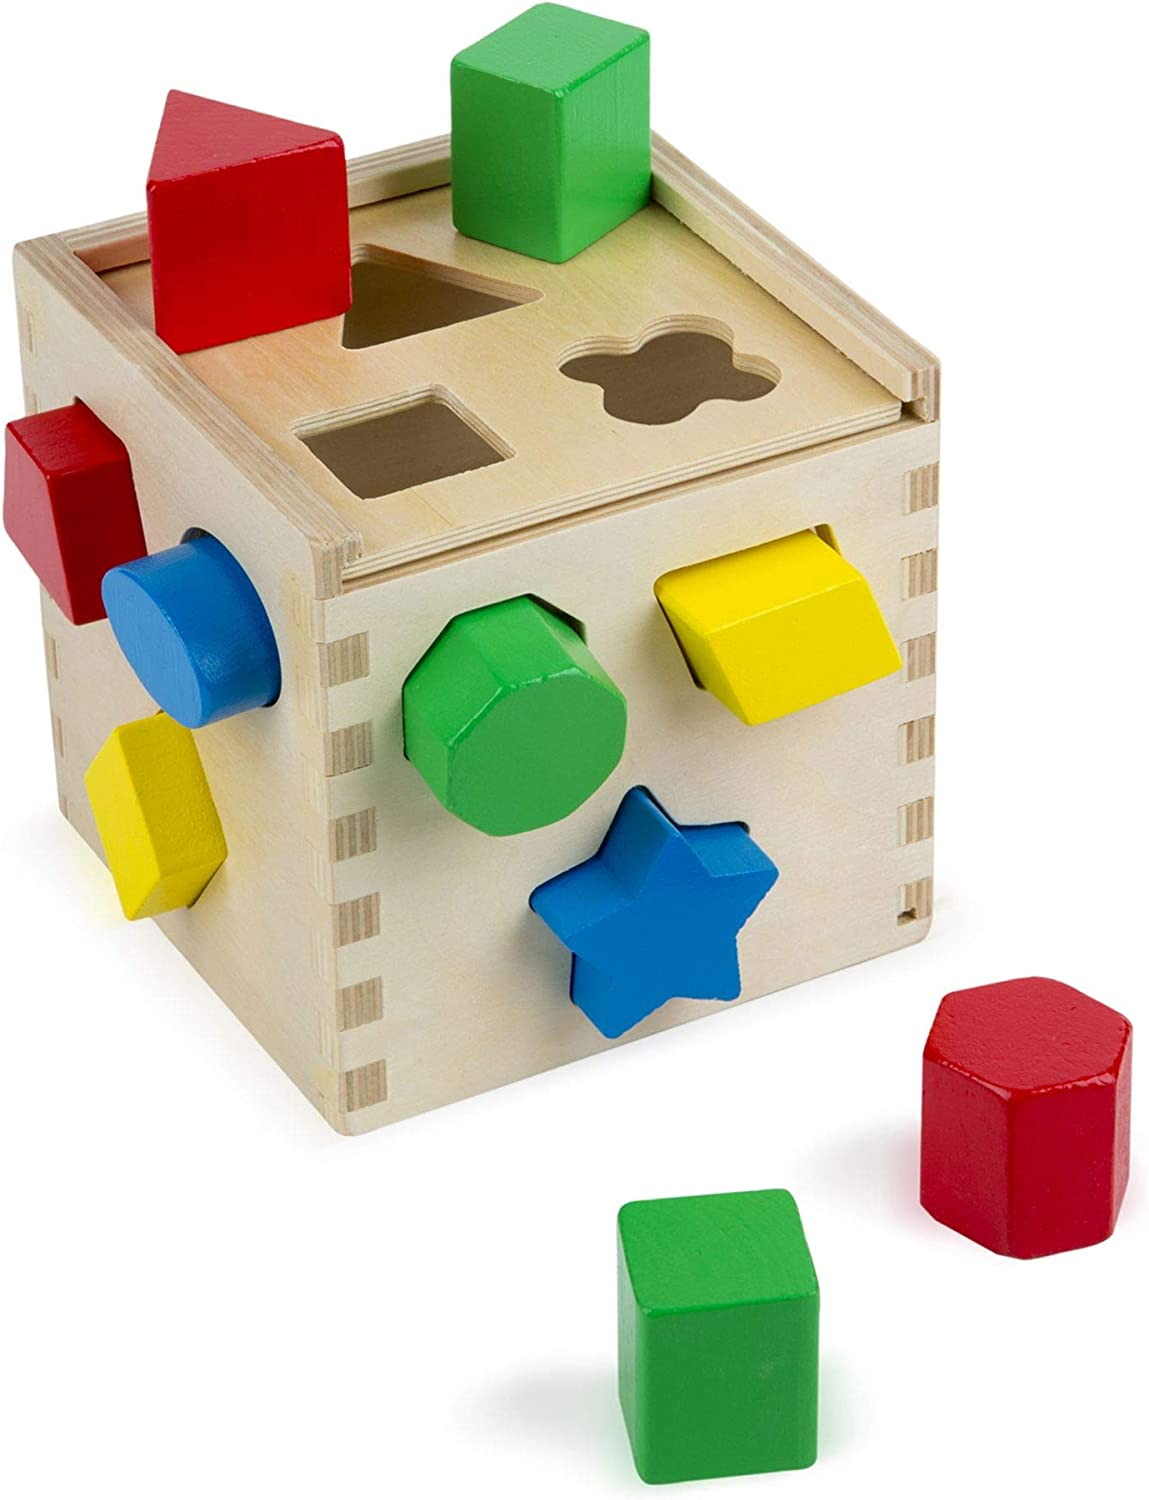 Melissa & Doug Shape Sorting Cube Classic Wooden Kids Toy - The ...